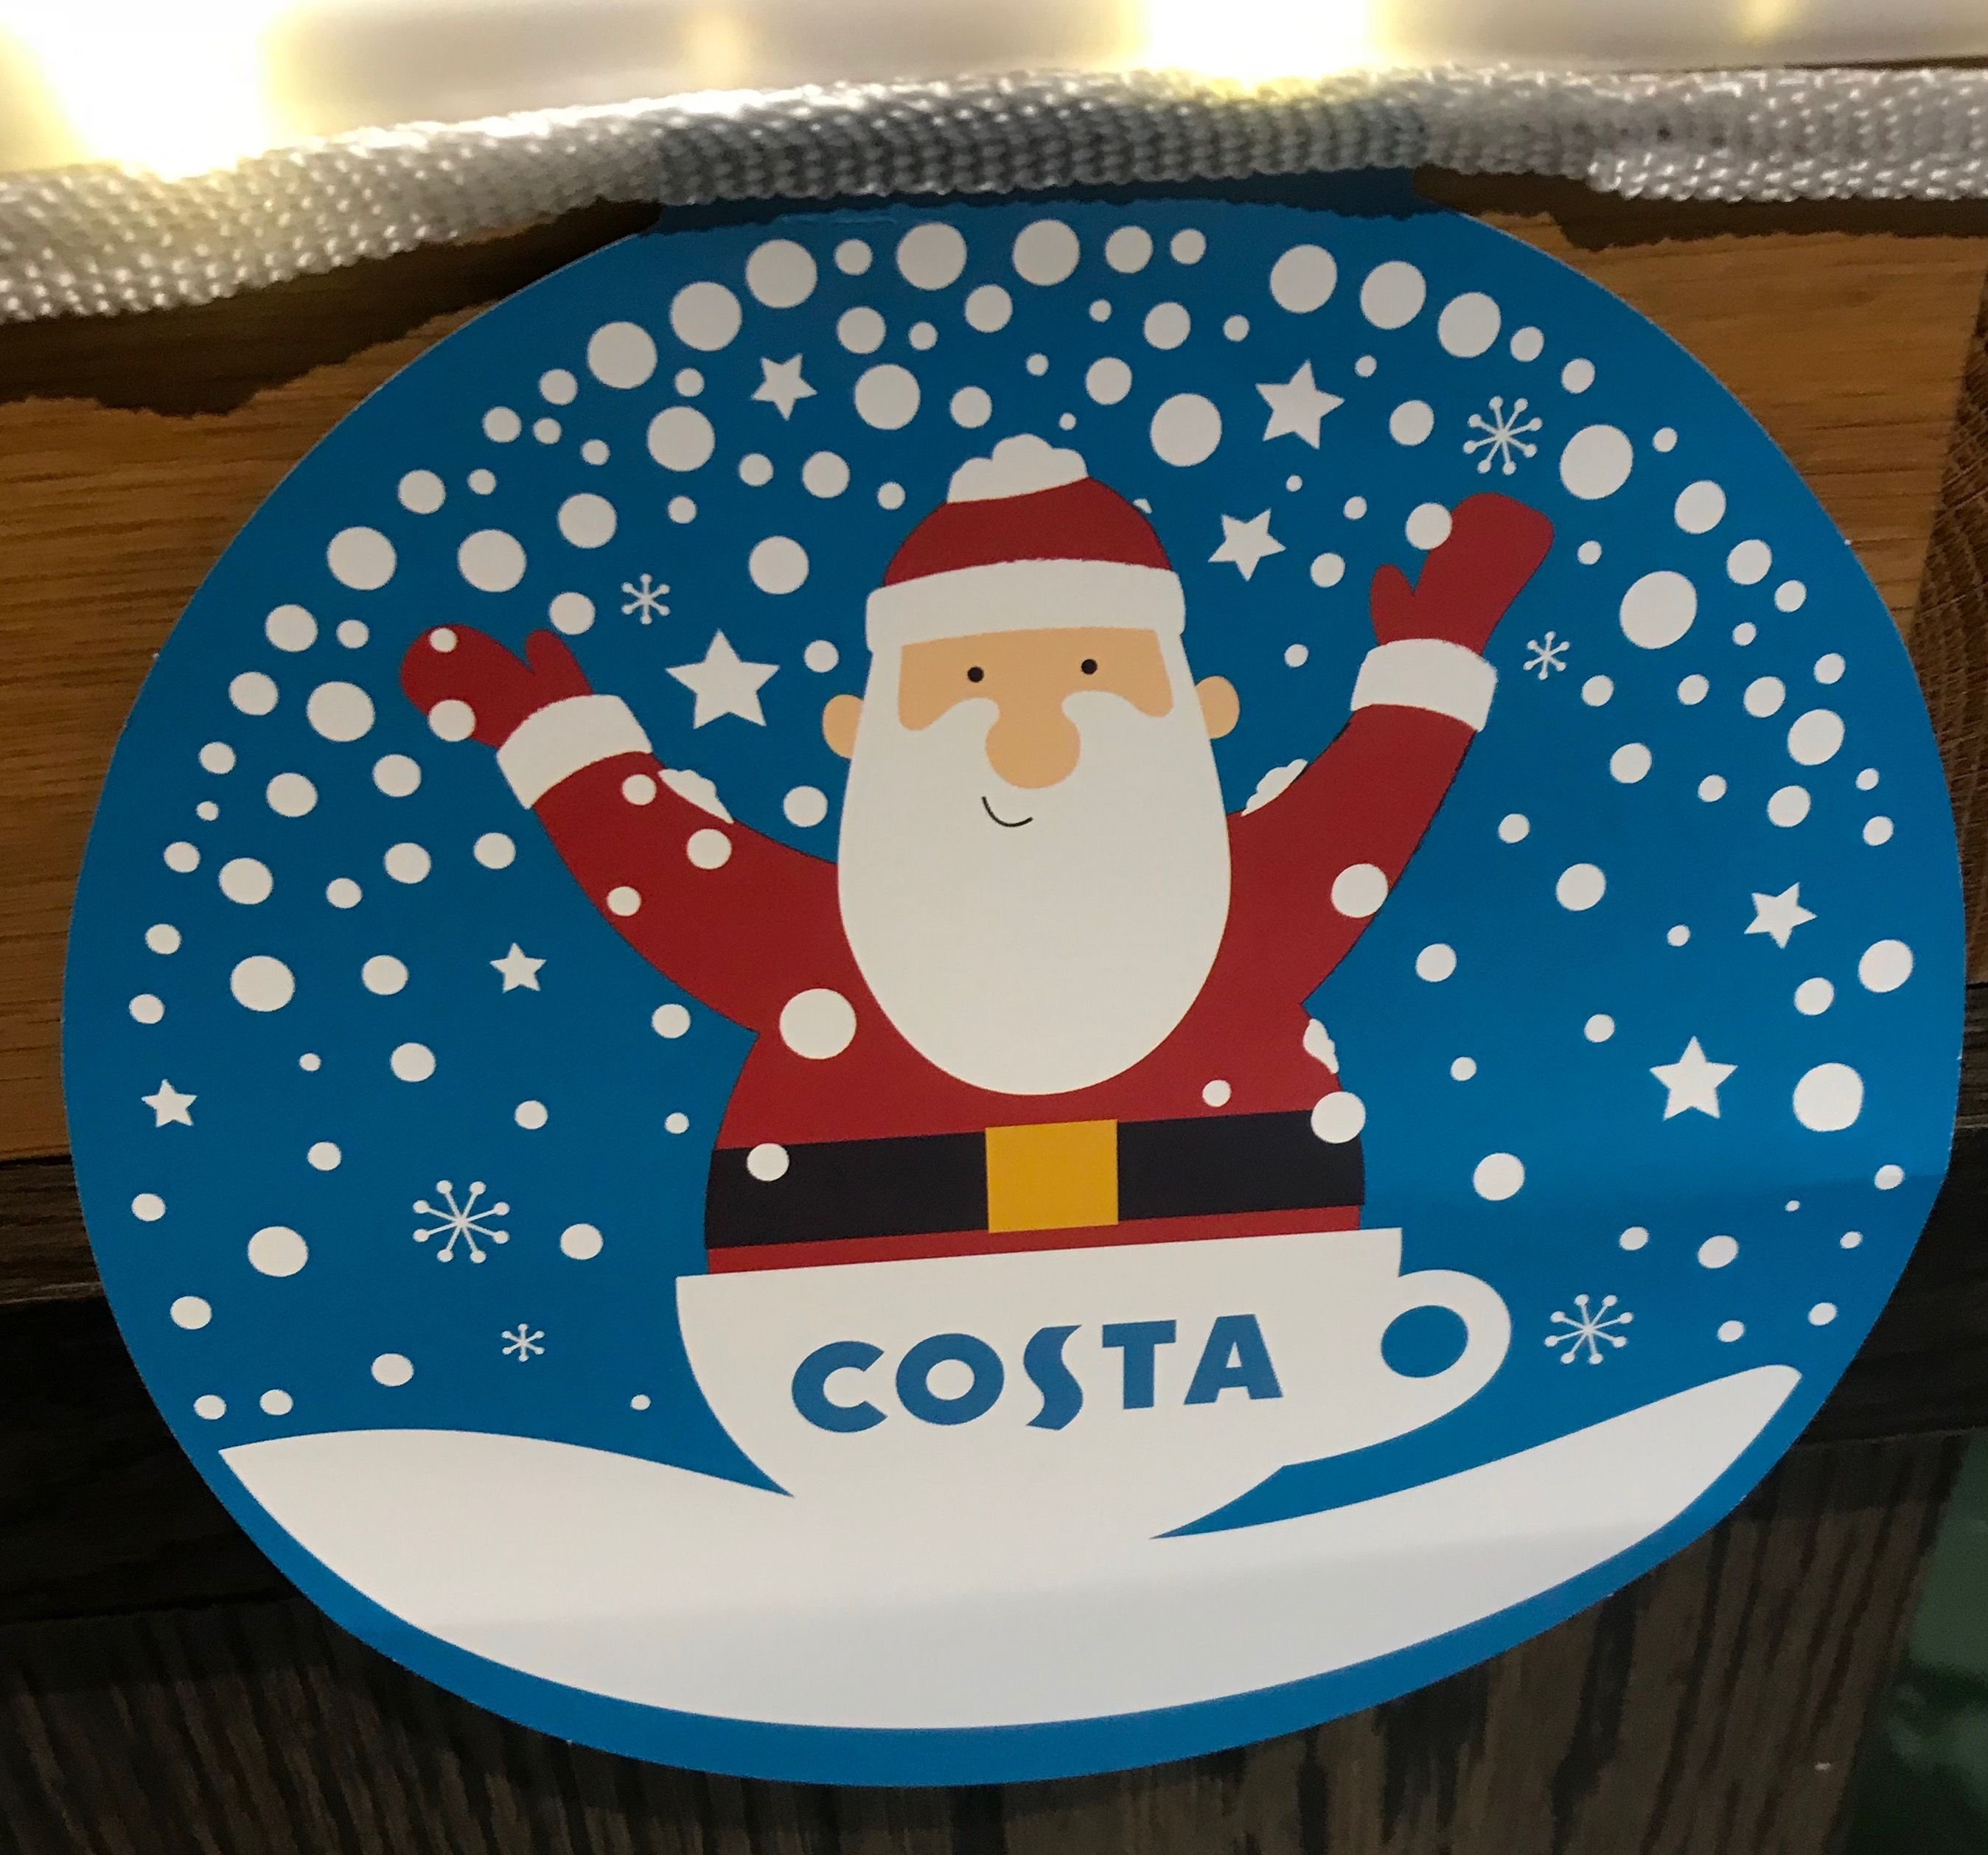 Costa Coffee Christmas 2018 has arrived. #CostaCoffee #Christmas